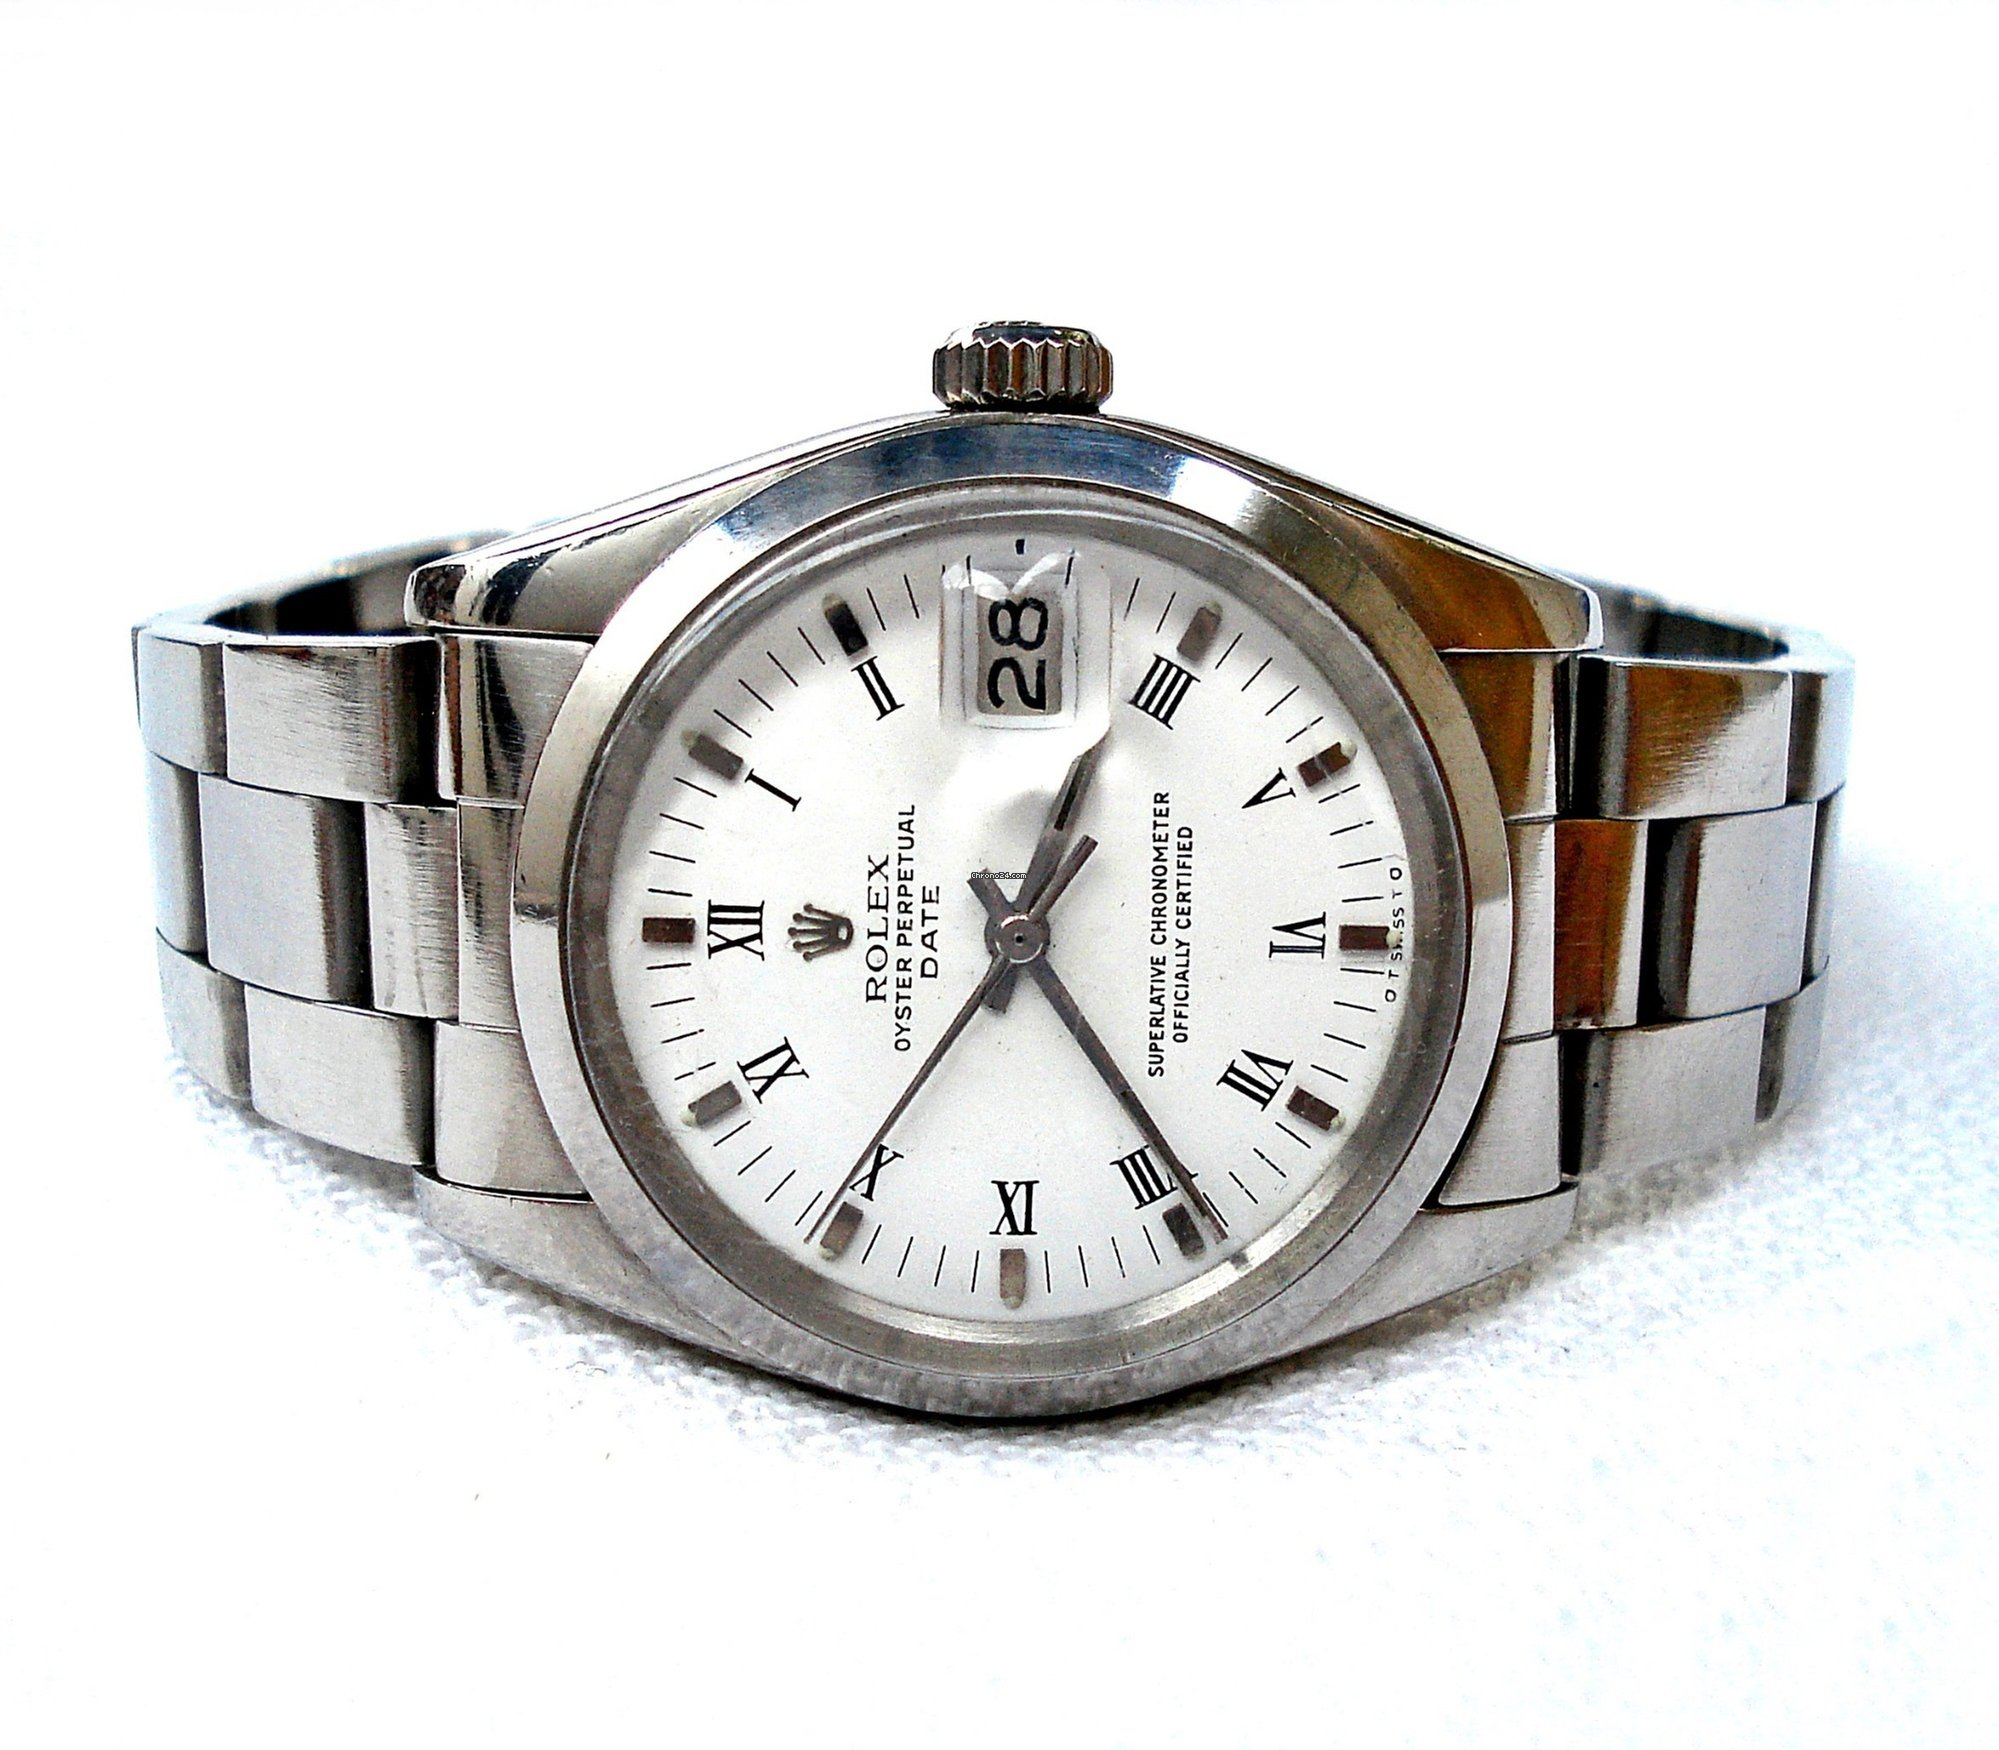 64c2ad4118a Rolex Oyster Perpetual Date Automatic Ref. 1500 Steel 35mm 1978c ...